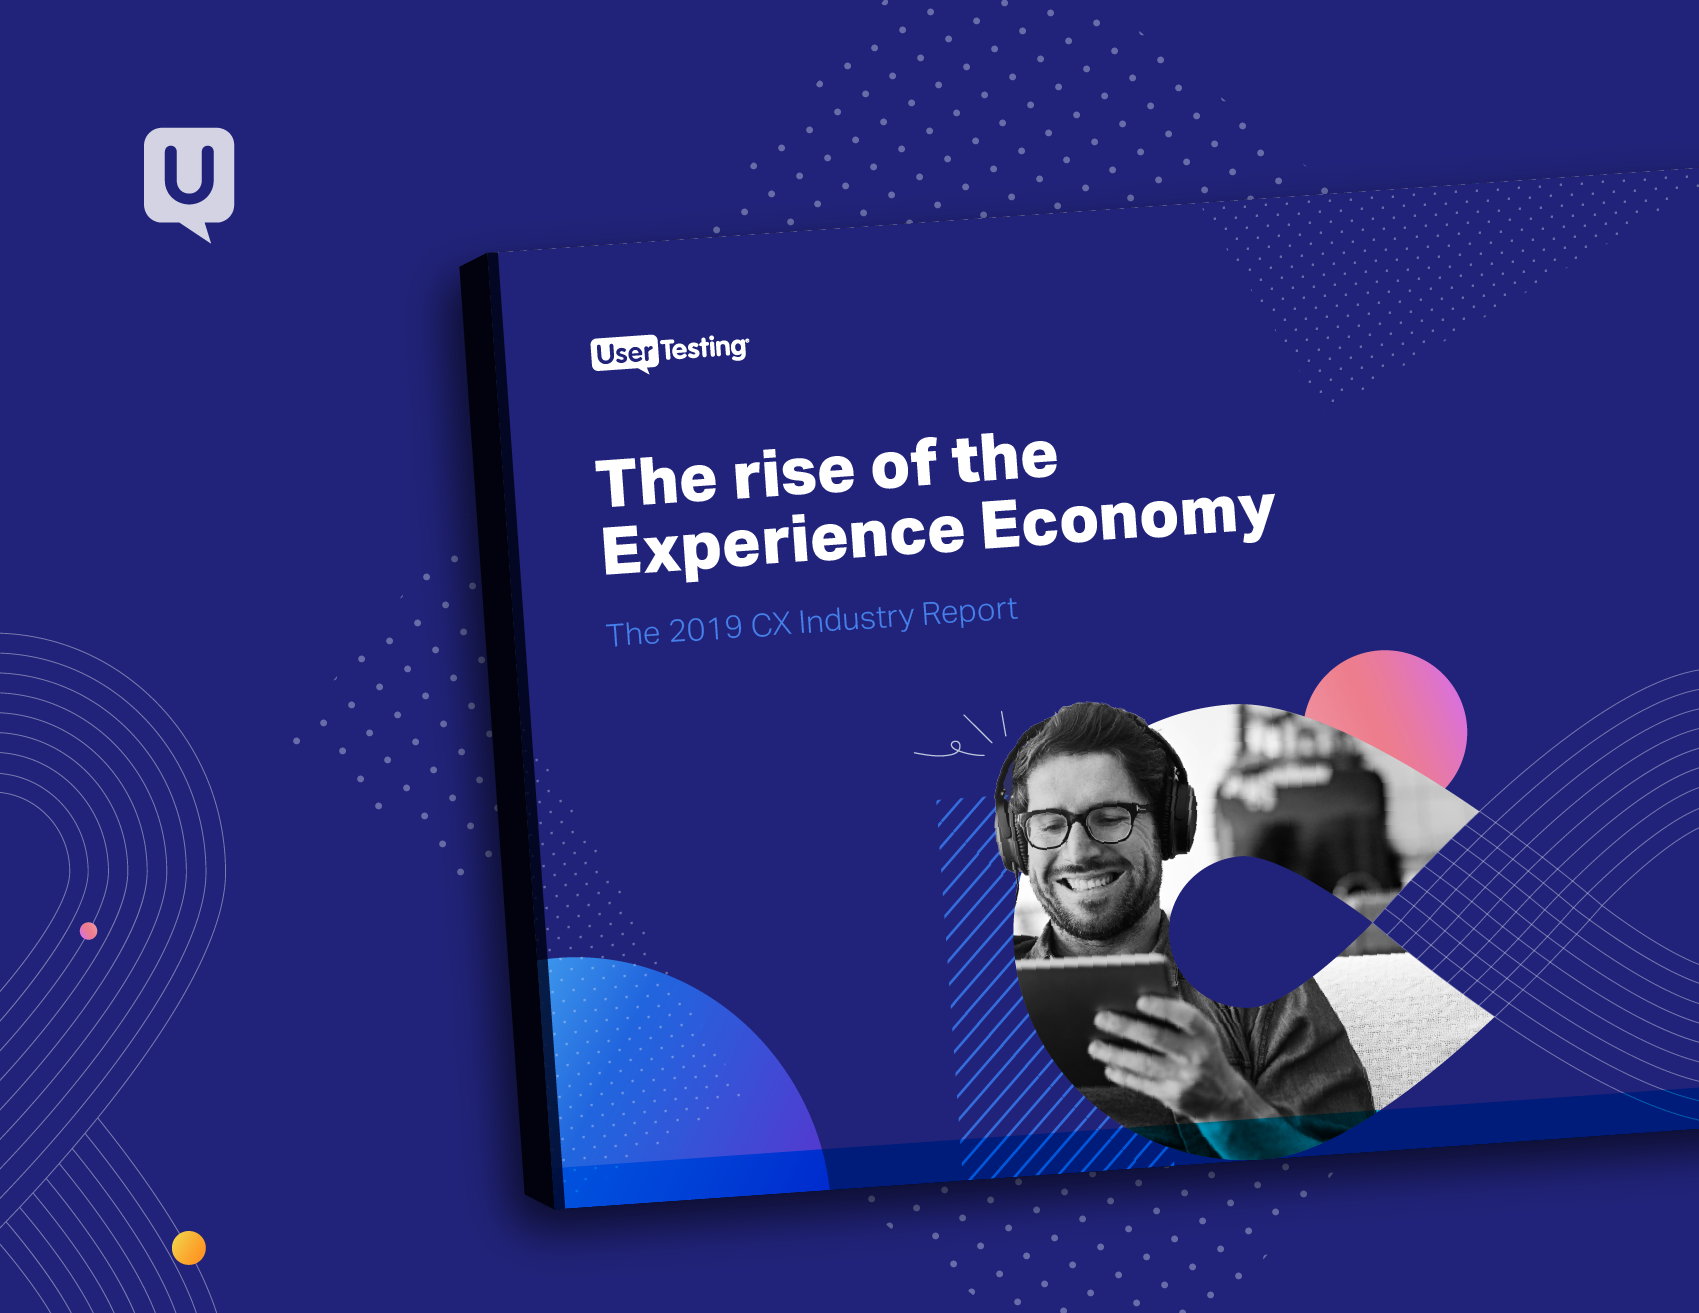 Insight for the Experience Economy